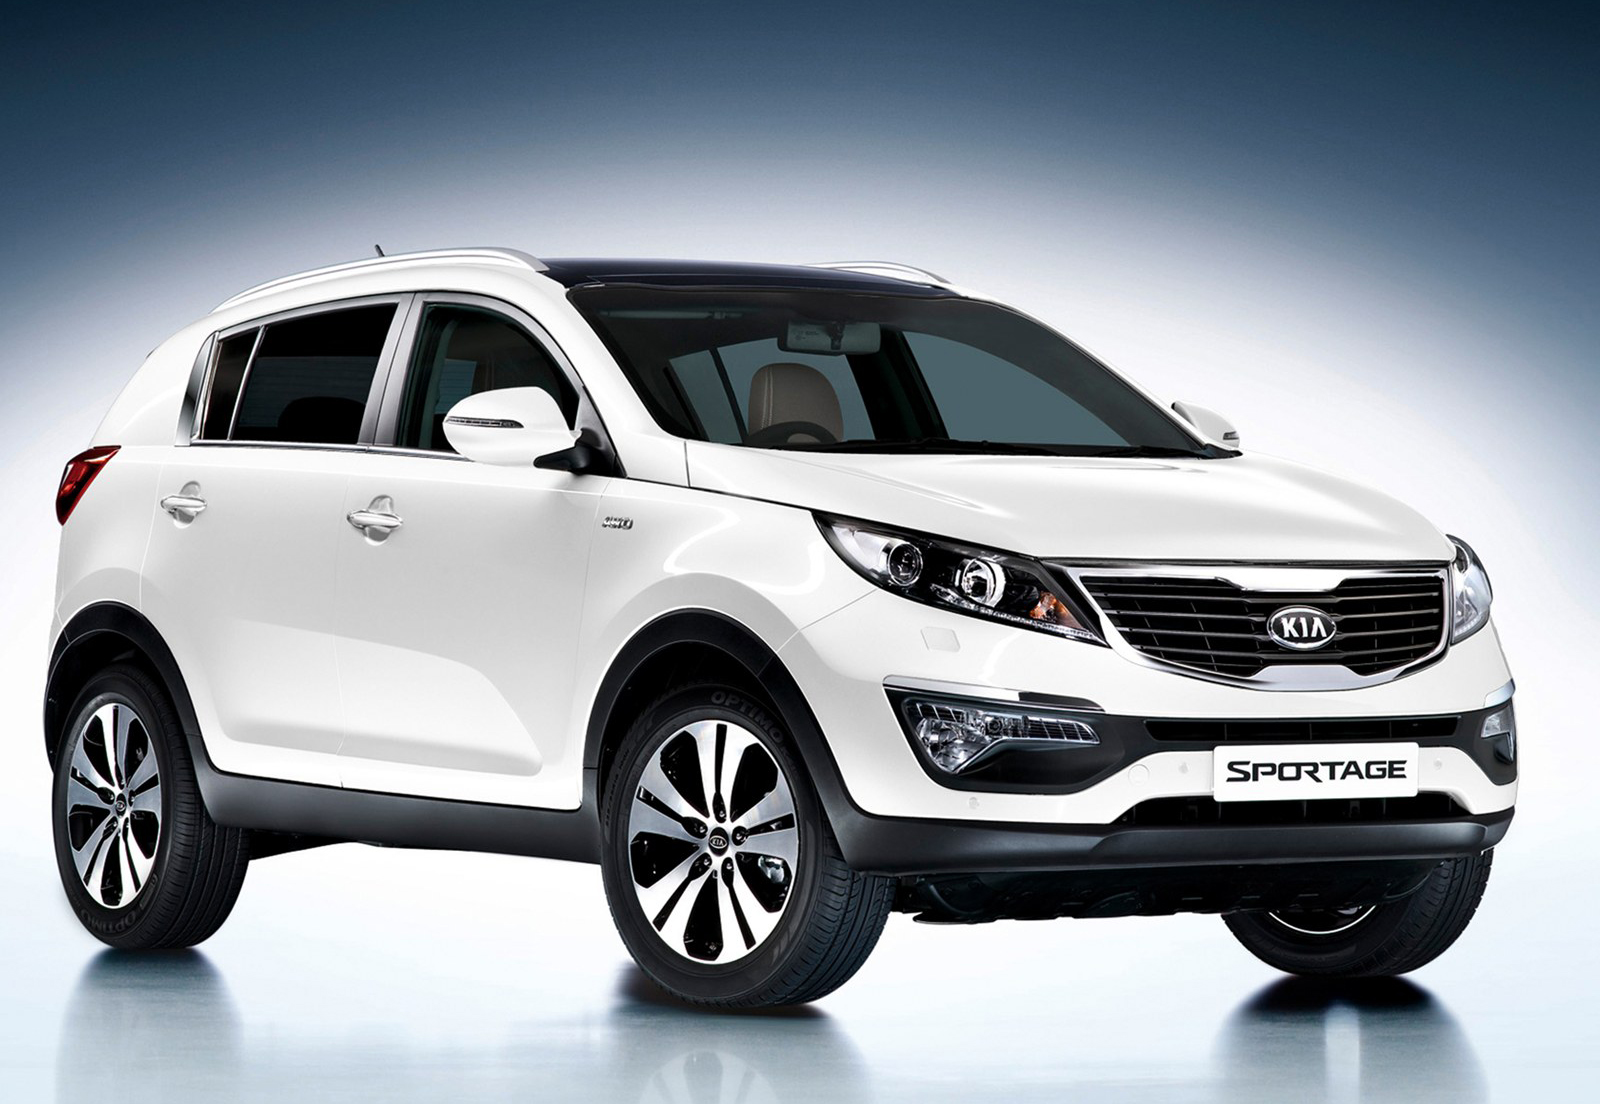 kia sportage 2013 review 4 cars and trucks. Black Bedroom Furniture Sets. Home Design Ideas